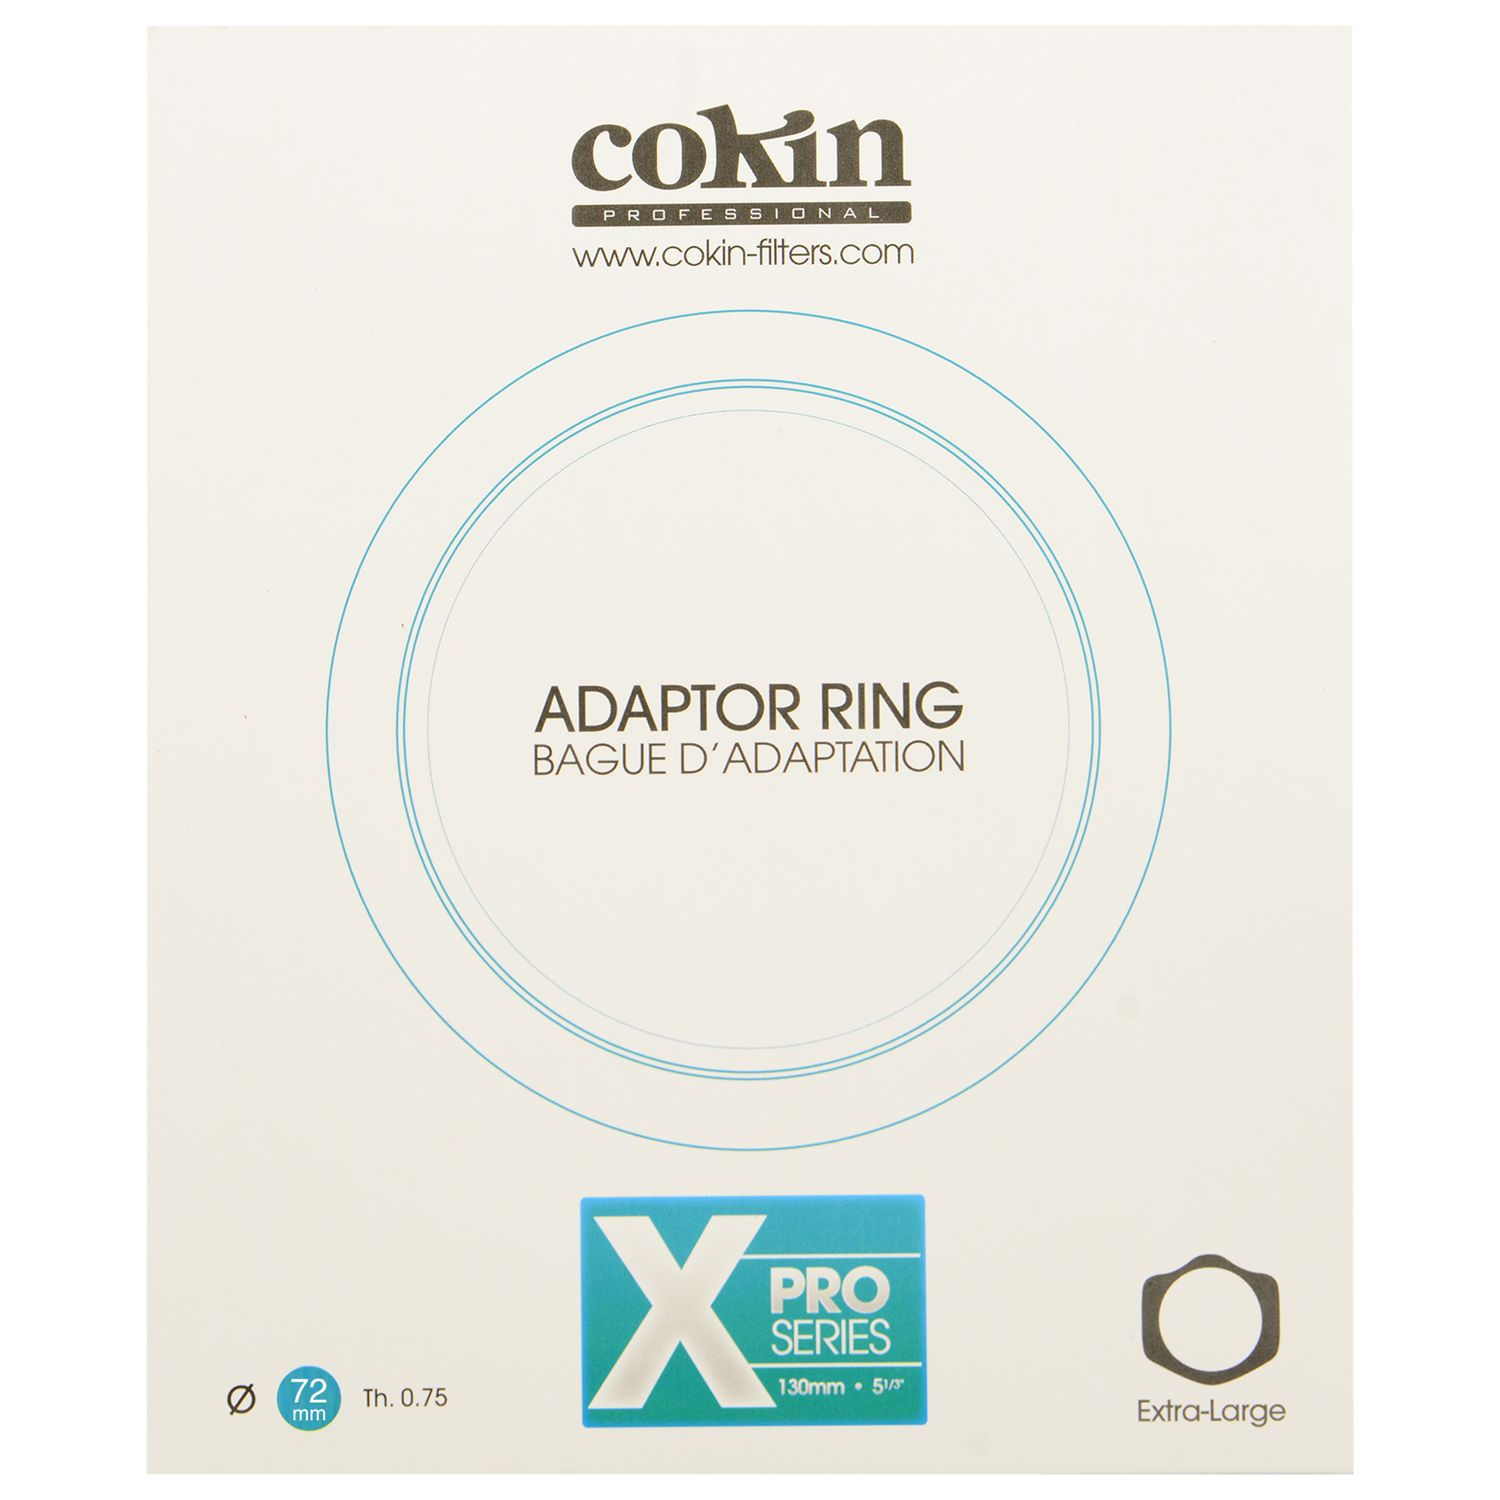 Cokin Cokin X472 X-Series 72mm TH0.75 Adapter Ring